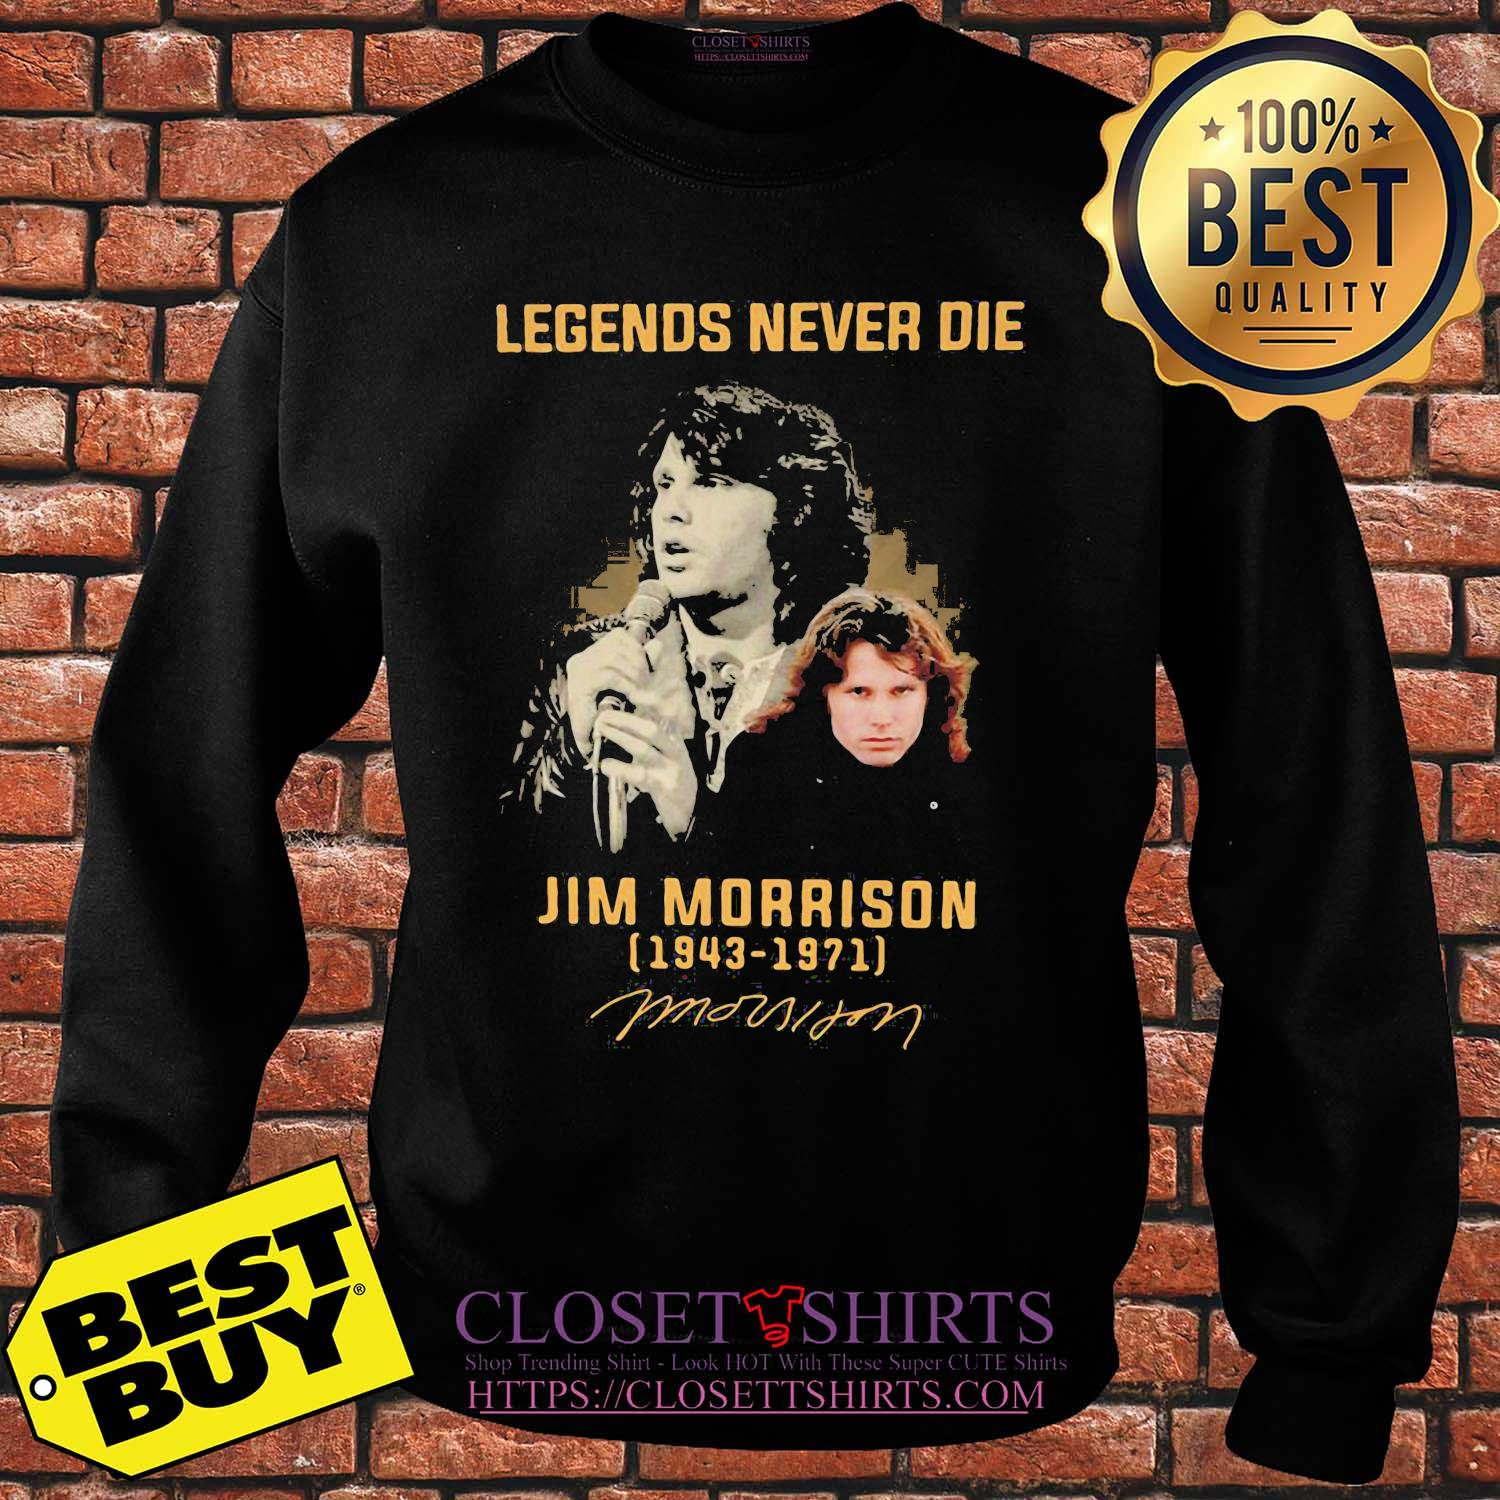 Legends never die Jim Morrison 1943-1971 signature shirt